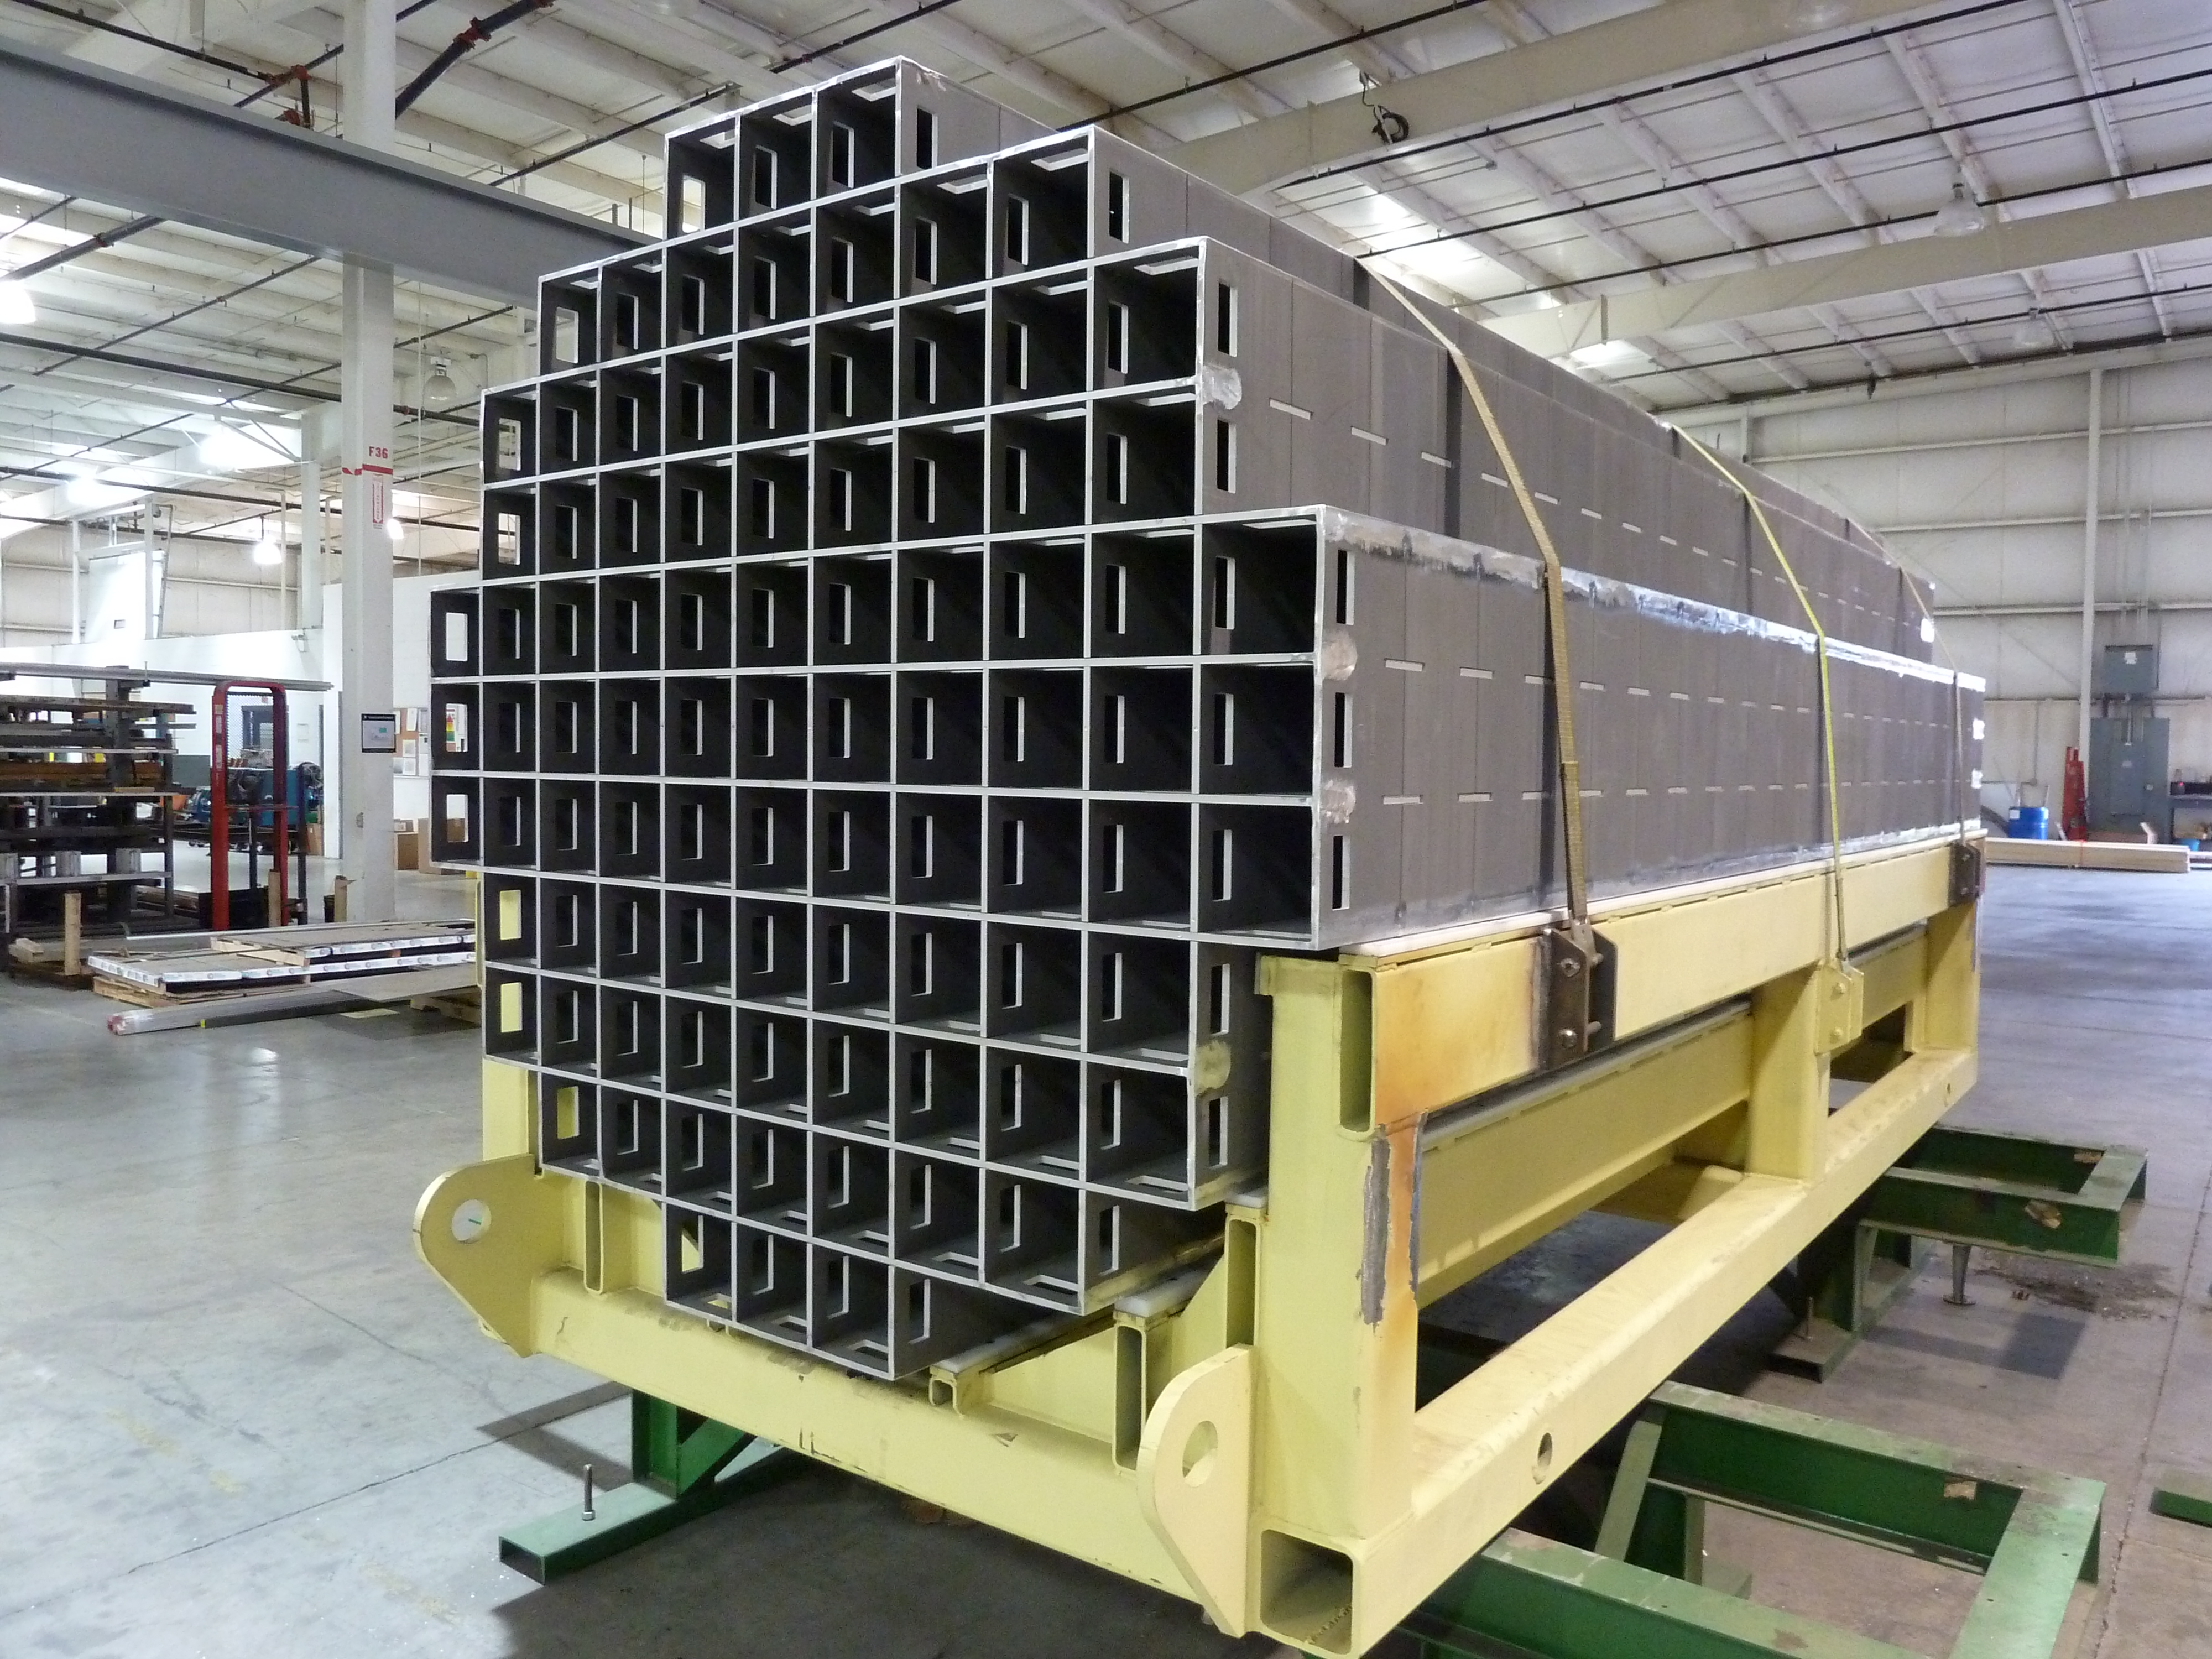 Completed Metamic‐HT Spent Fuel Storage Baskets Represent Many Firsts for the Nuclear Industry